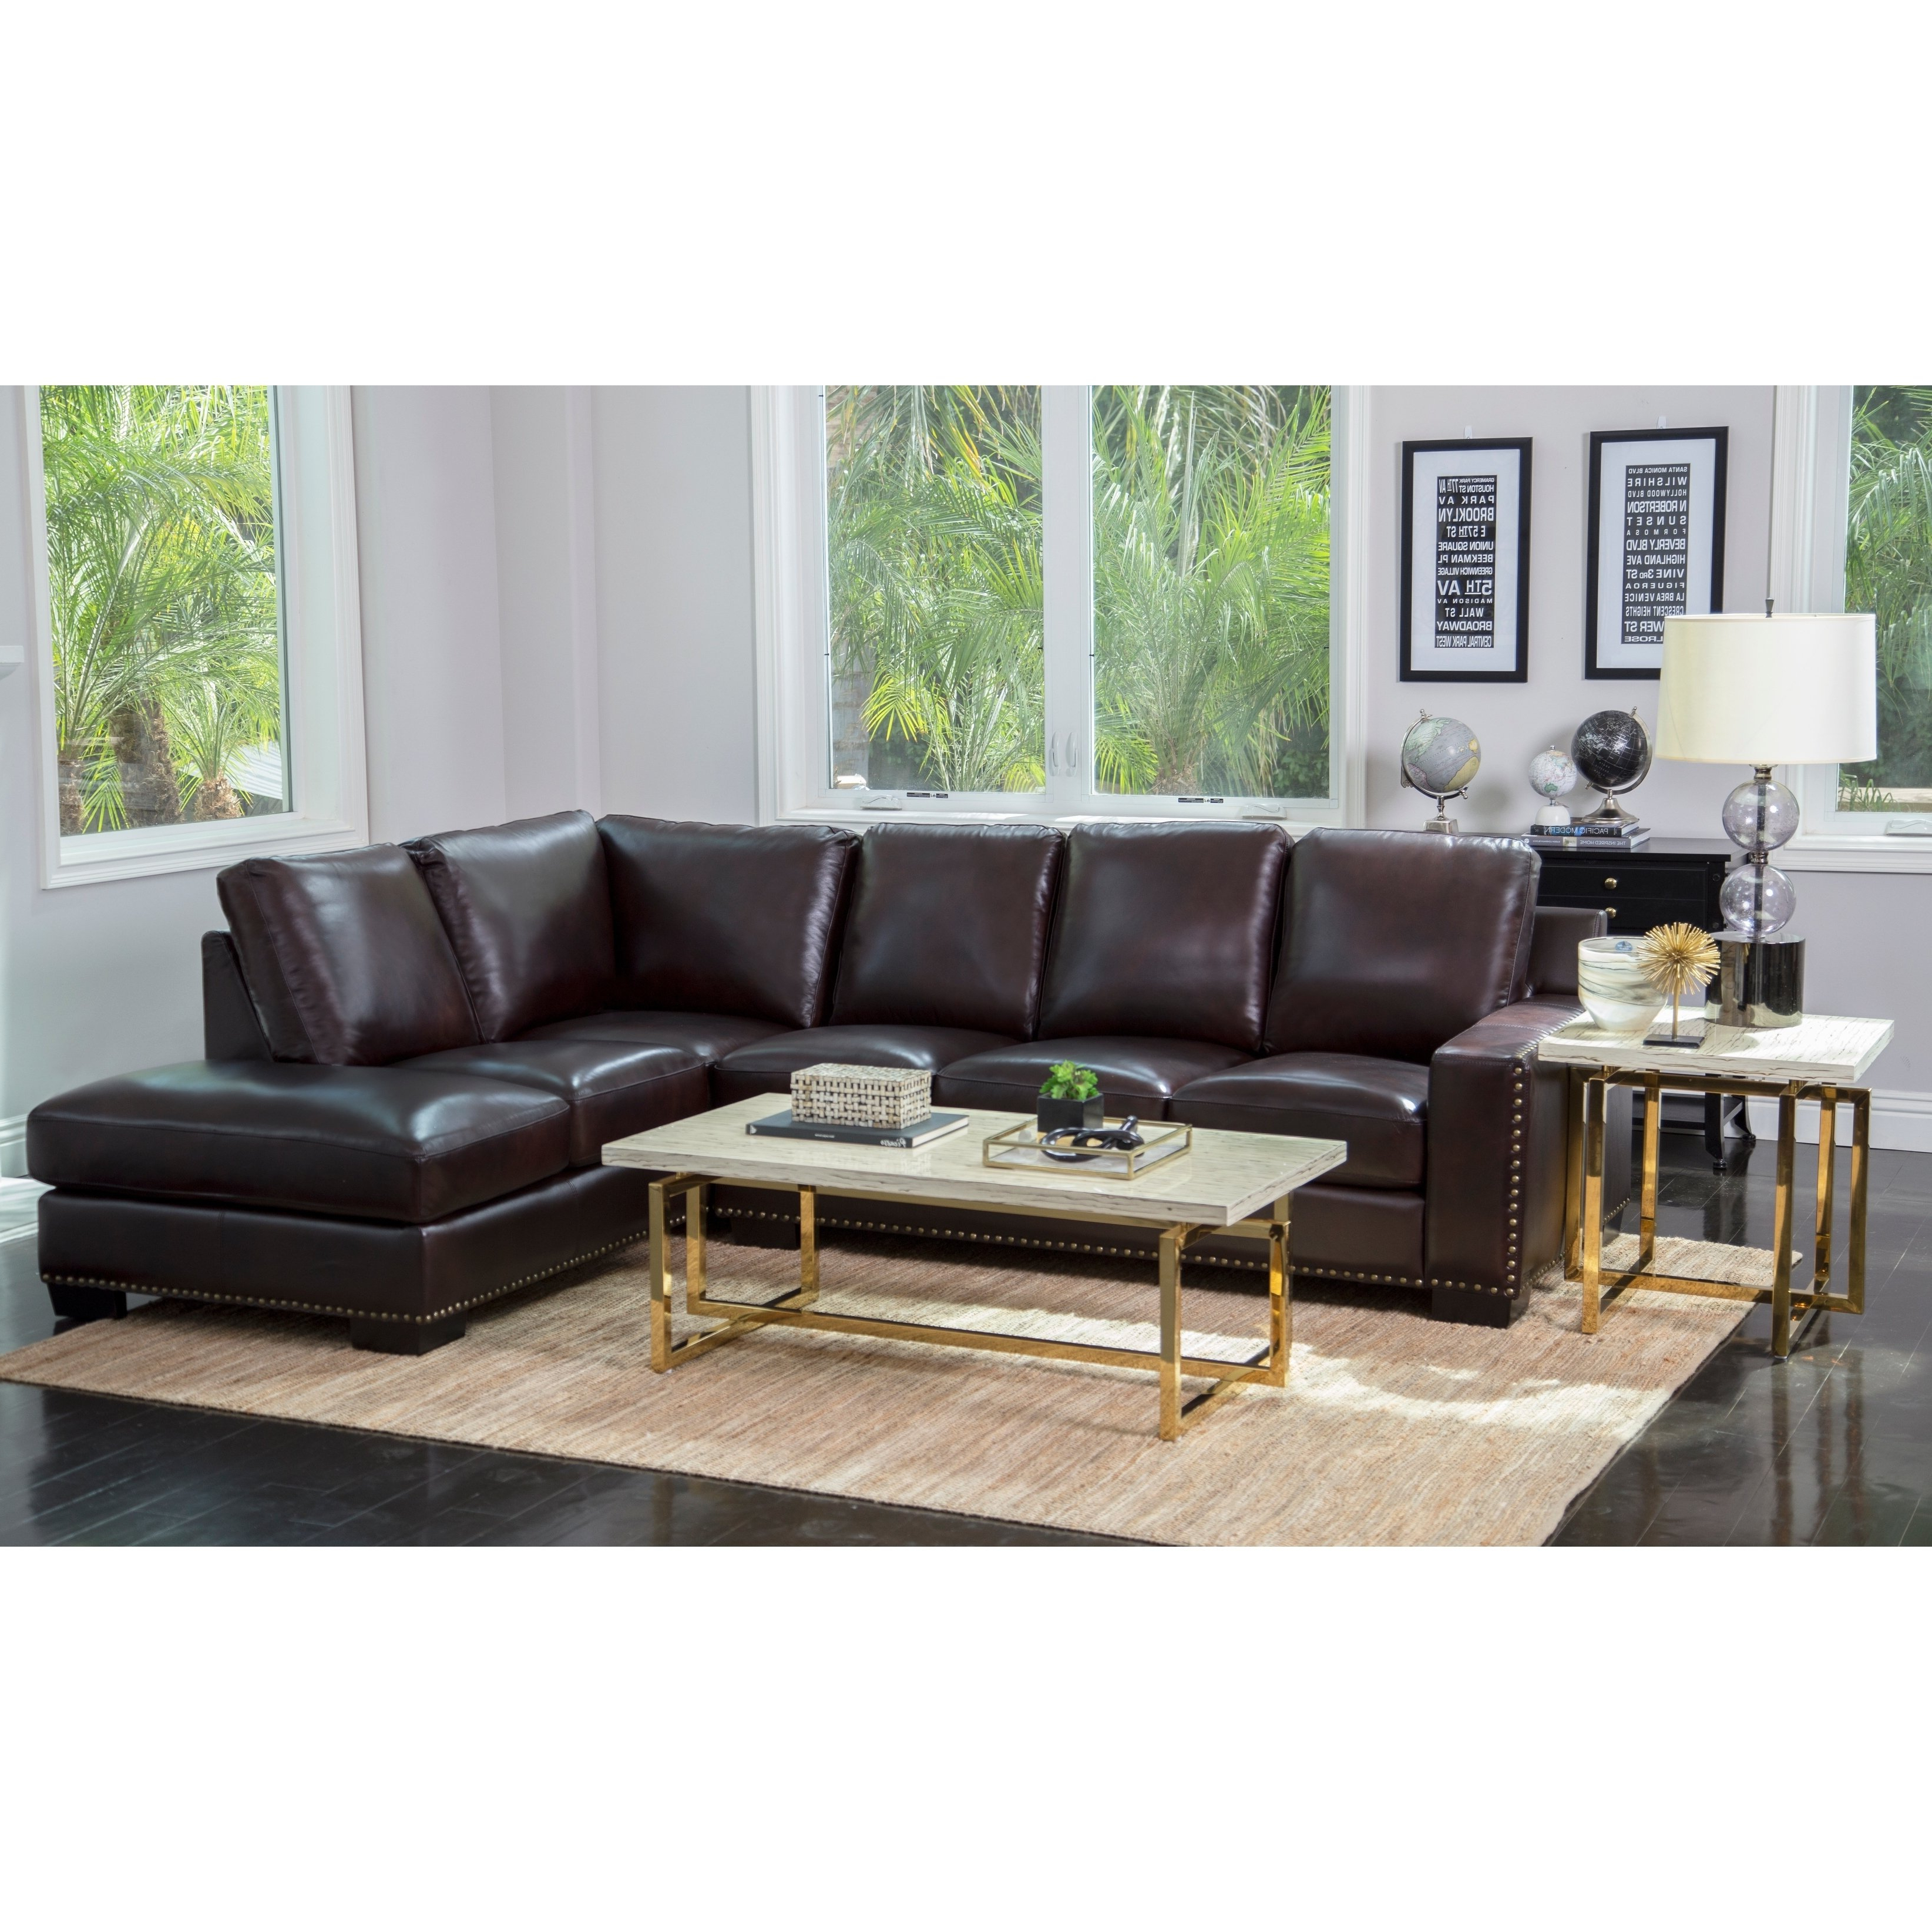 Trendy Shop Abbyson Monaco Brown Top Grain Leather Sectional Sofa – On Sale With Regard To Adeline 3 Piece Sectionals (View 19 of 20)